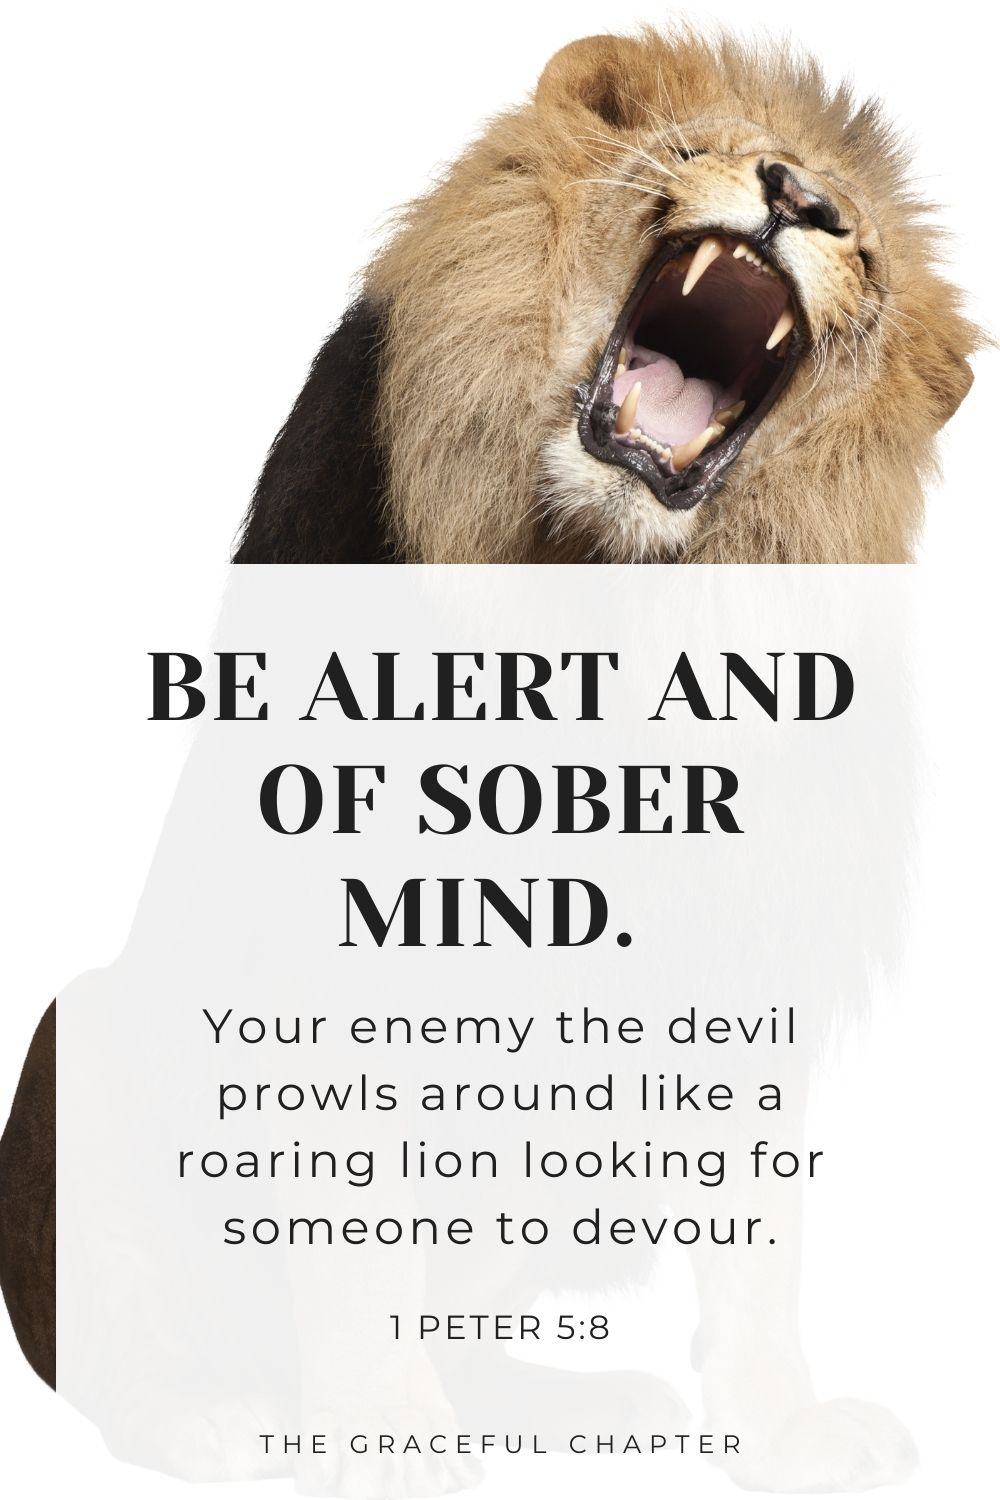 Be alert and of sober mind. Your enemy the devil prowls around like a roaring lion looking for someone to devour. 1 Peter 5:8